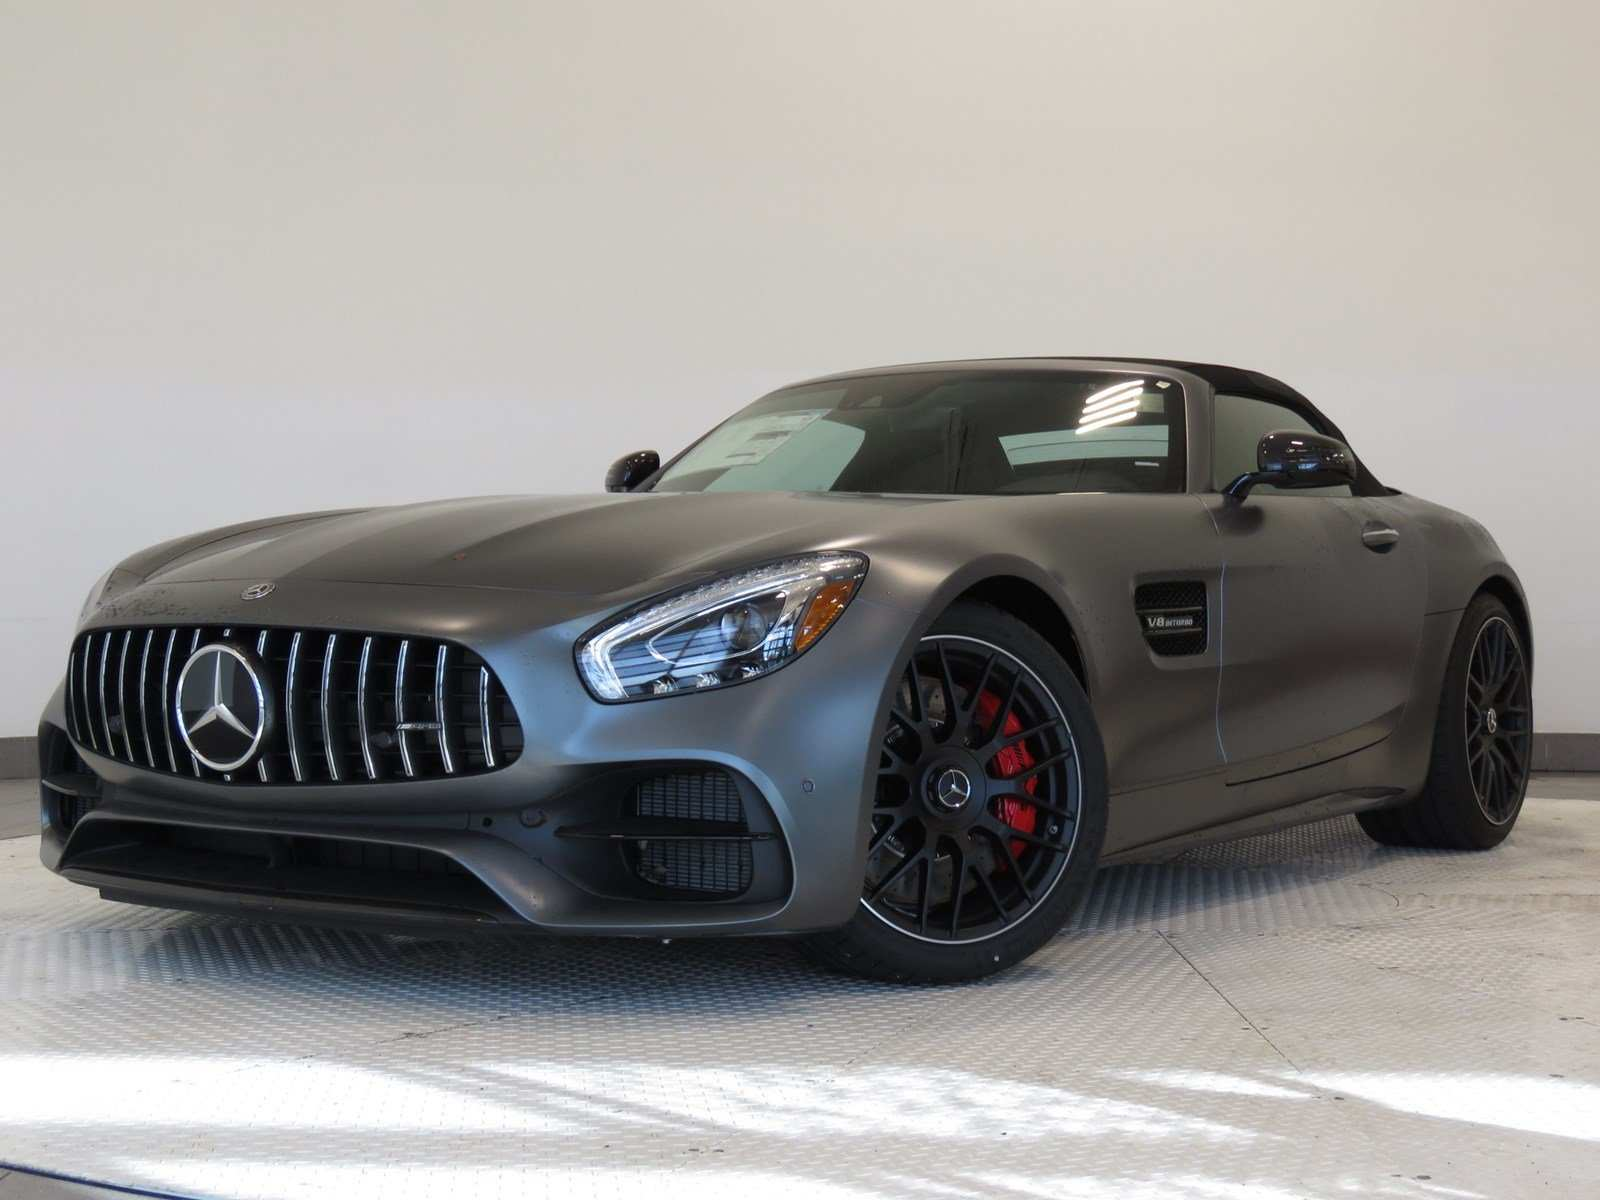 37 Great Mercedes Amg Gt 2019 Reviews for Mercedes Amg Gt 2019